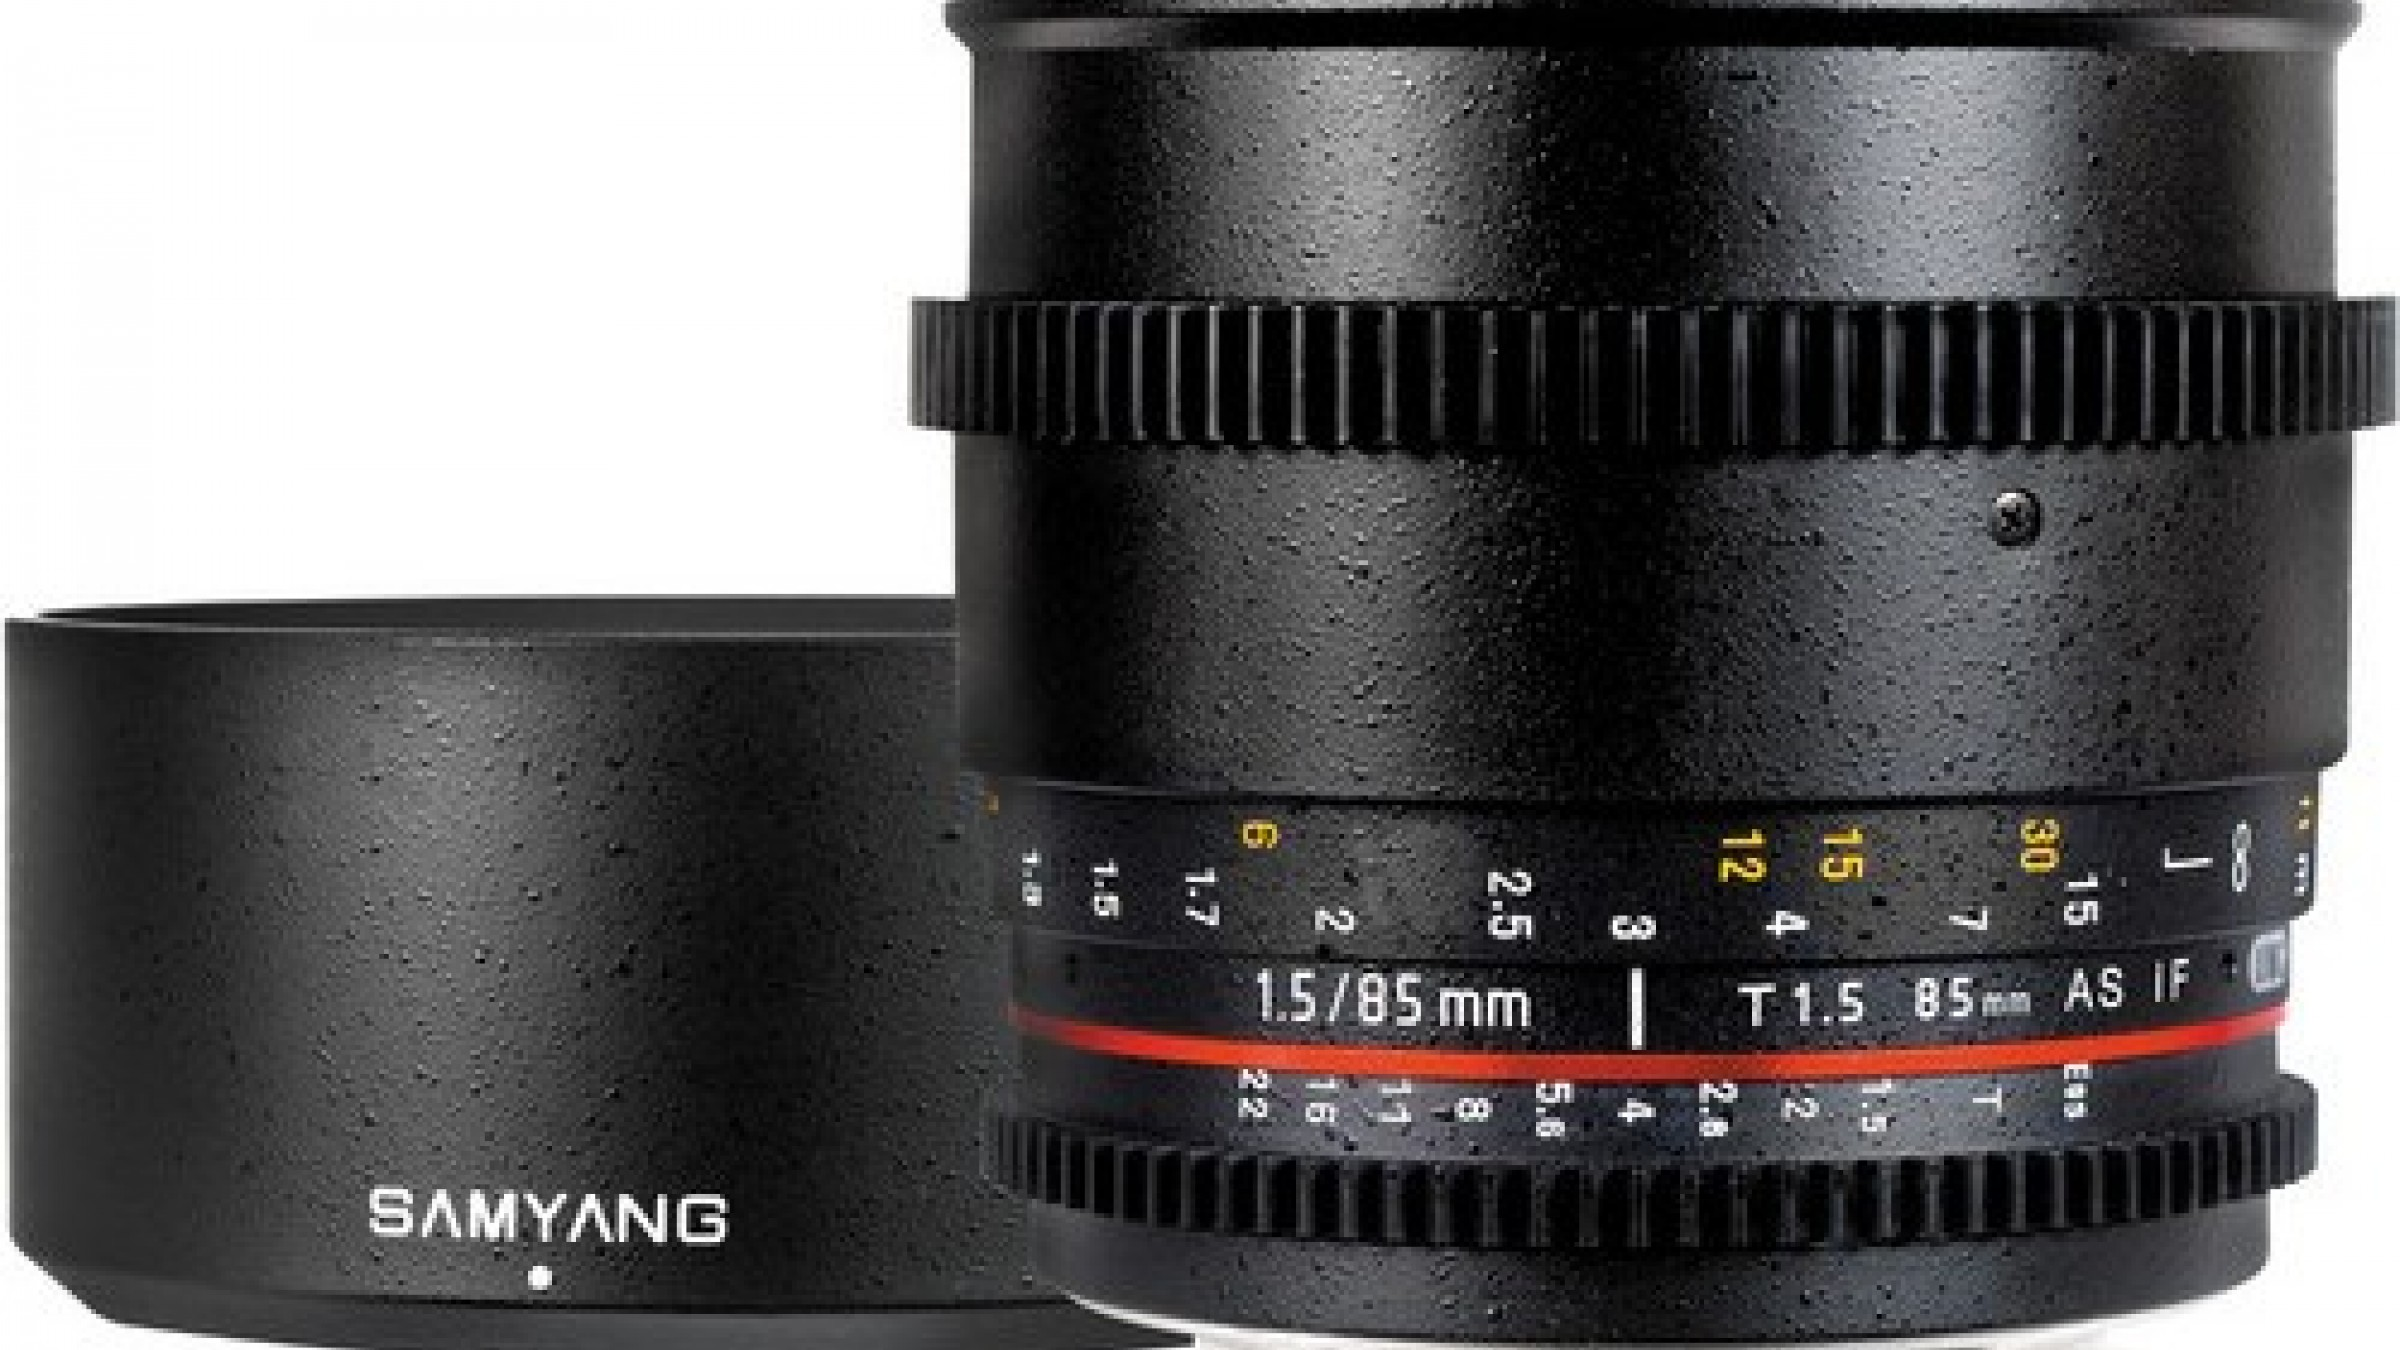 New Cine-Style Lens for Your Arsenal: Samyang/Rokinon 85mm T/1 5 Now